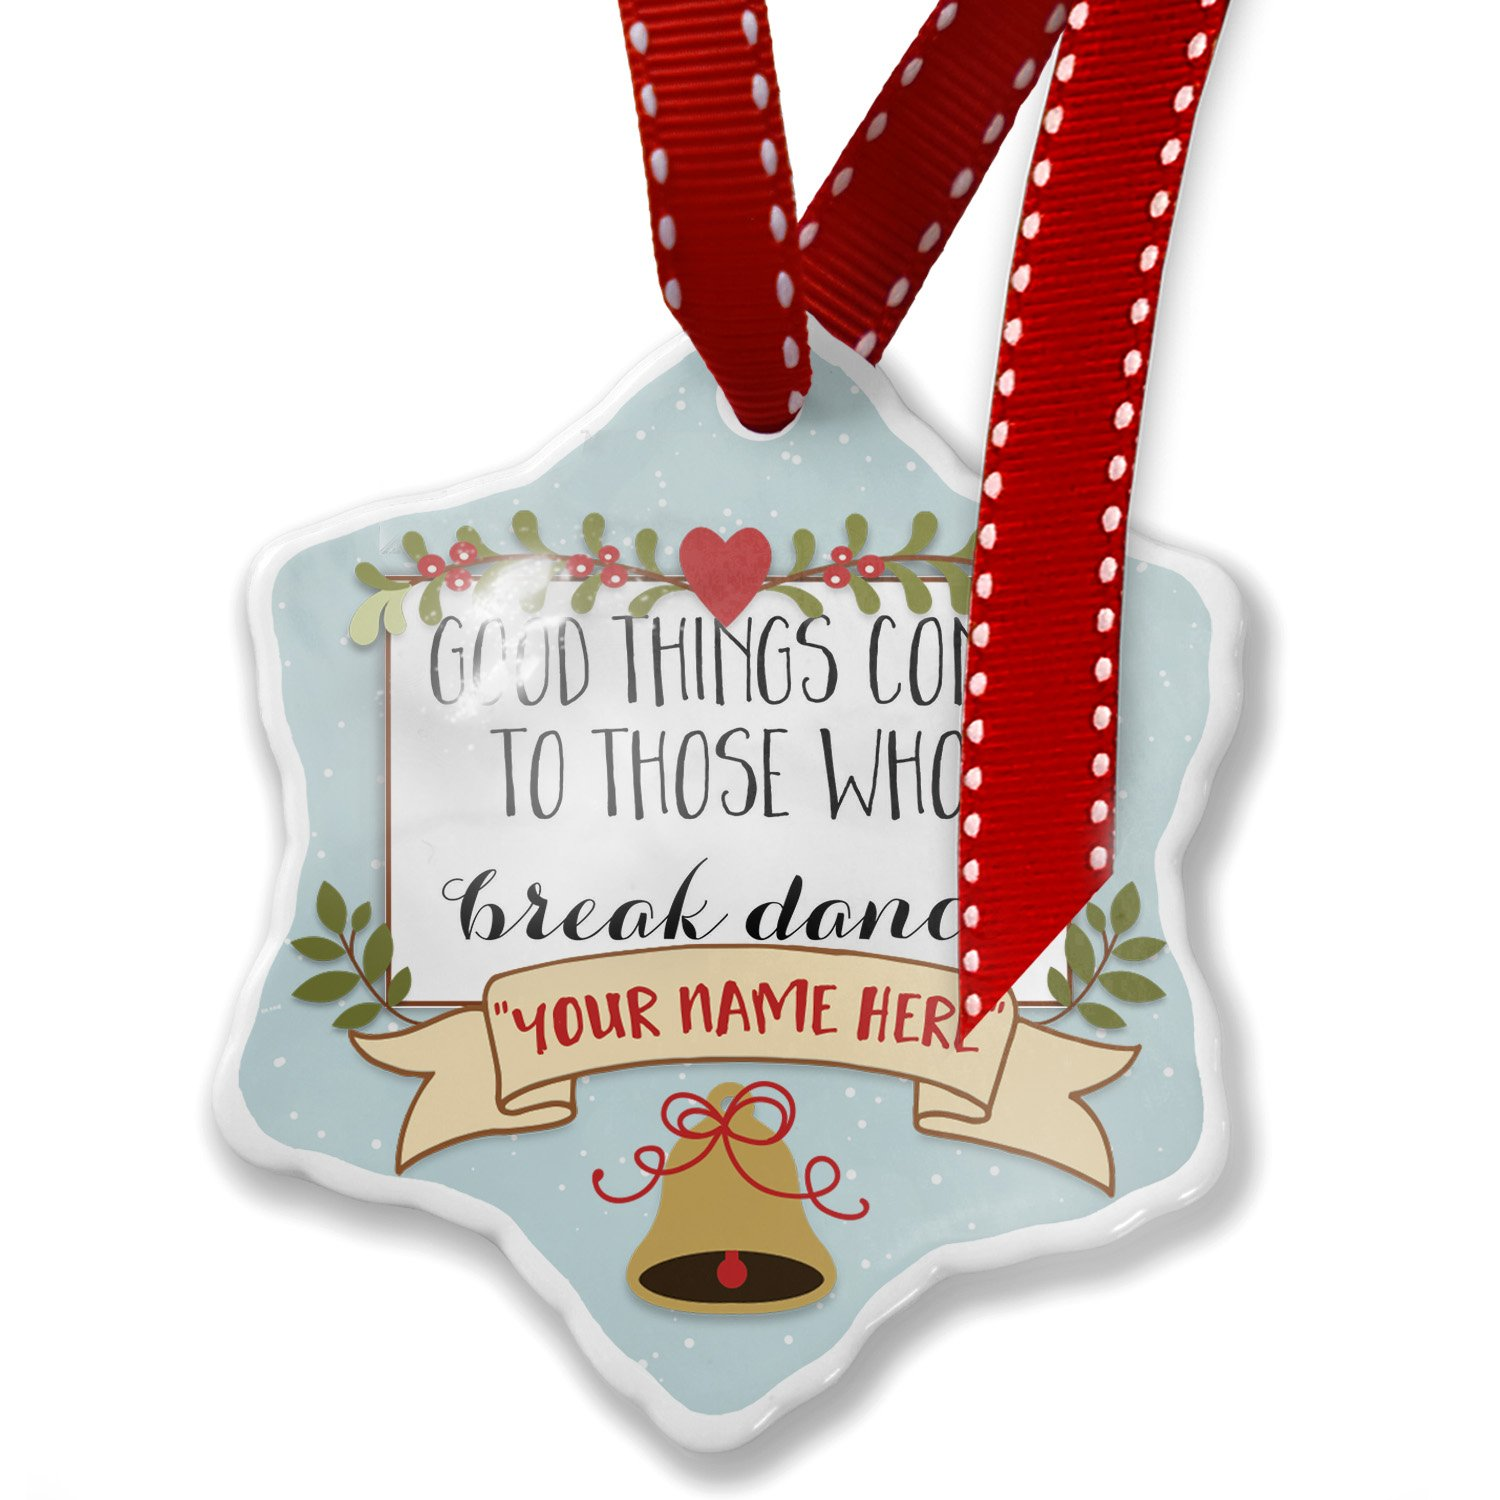 Add Your Own Custom Name, Good Things Come to Those Who Break Dance Funny Saying Christmas Ornament NEONBLOND